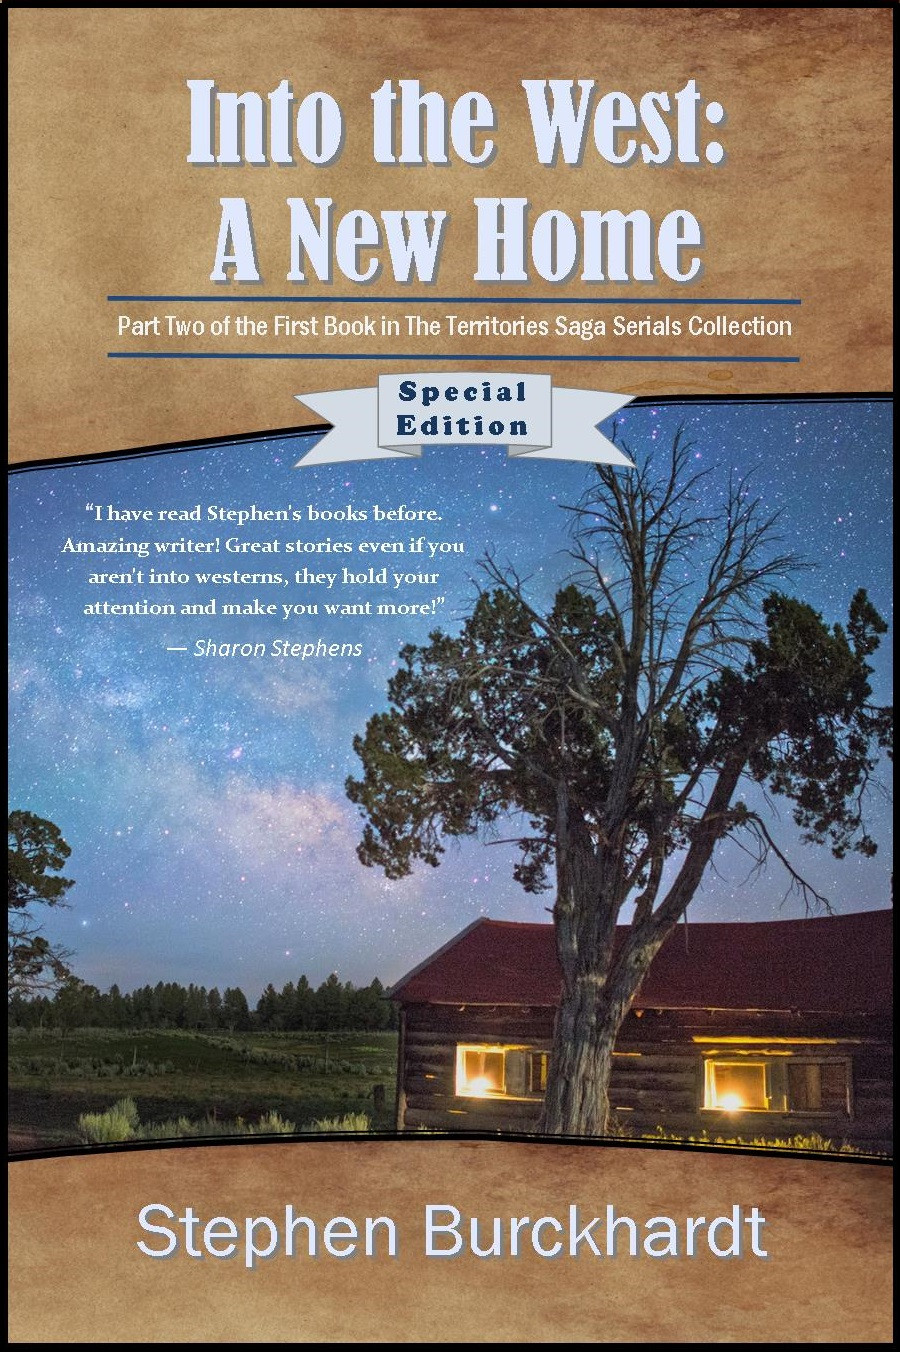 Special Edition - Into the West: A New Home Now Available on Kindle